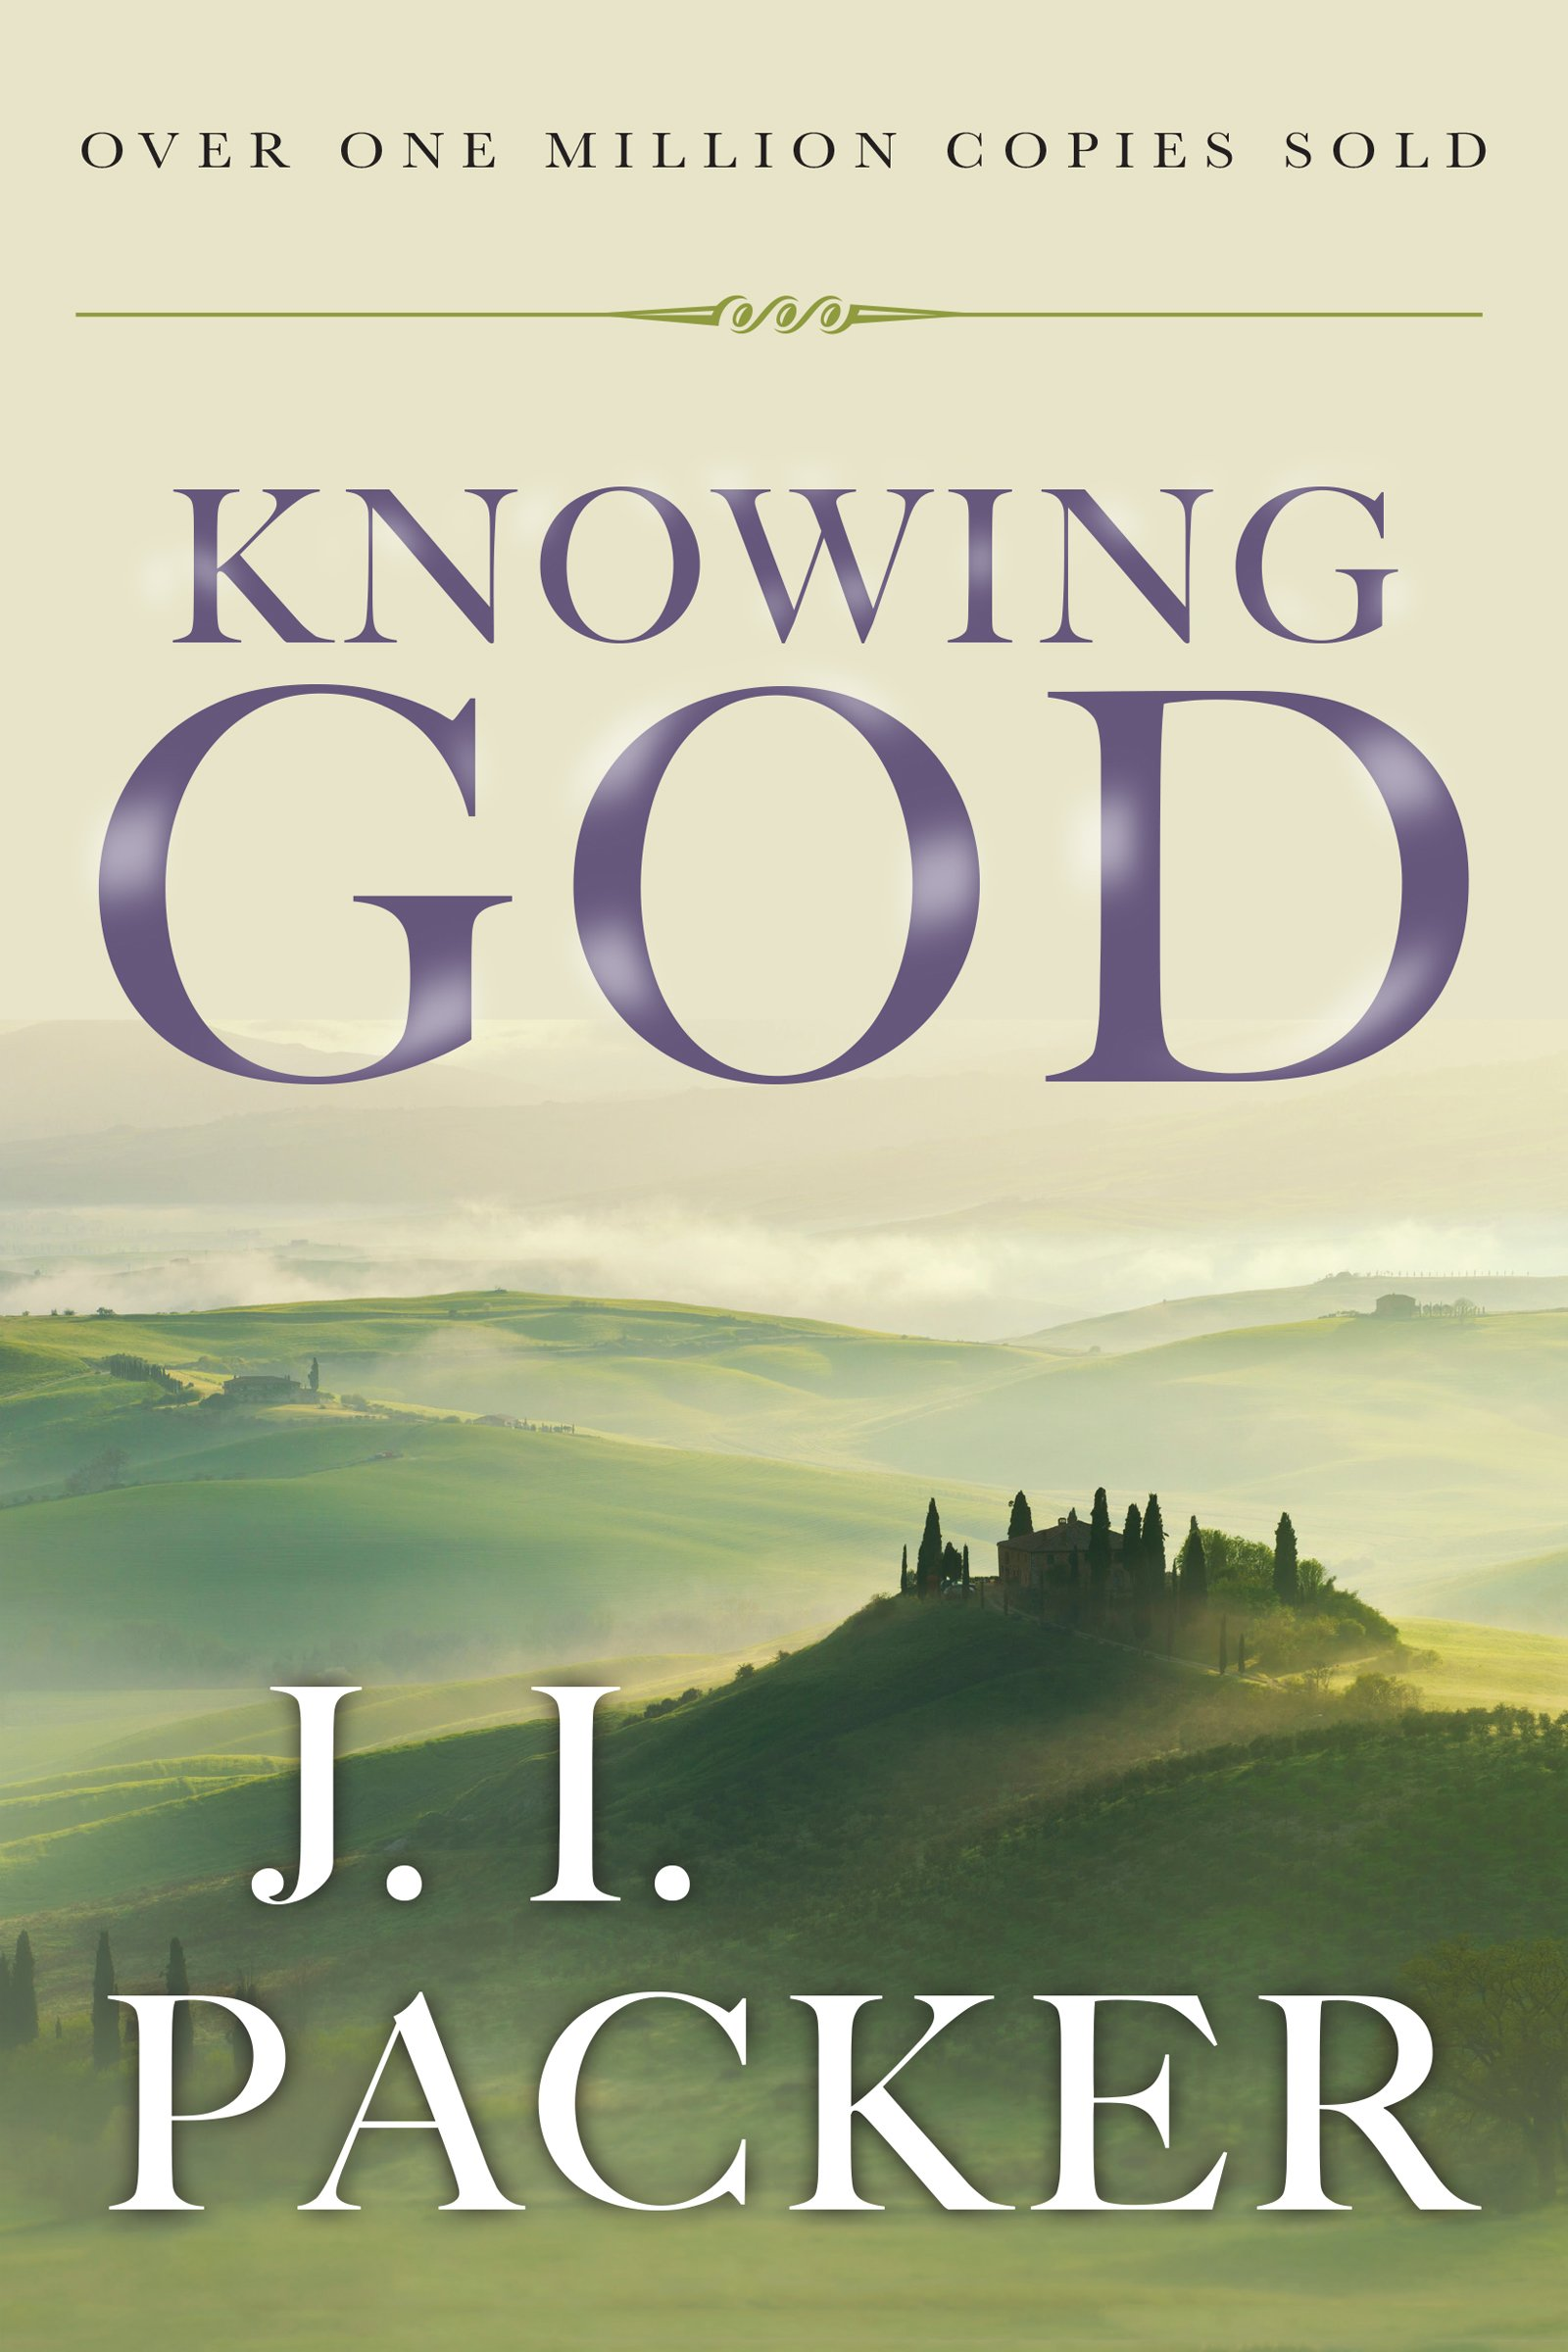 What We're Reading - For over 40 years, J. I. Packer's classic has been an important tool to help Christians around the world discover the wonder, the glory and the joy of knowing God. With over 1,000,000 copies sold, Packer's trusted guide helps Christians new and old turn abstract ideas about God into intimate knowledge of God.Stemming from Packer's profound theological knowledge, Knowing God brings together two important facets of the Christian faith― knowing about God and also knowing God through the context of a close relationship with the person of Jesus Christ. Written in an engaging and practical tone, this thought-provoking work seeks to transform and enrich the Christian understanding of God.Explaining both who God is and how we can relate to him, Packer divides his book into three sections: The first directs our attention to how and why we know God, the second to the attributes of God and the third to the benefits enjoyed by a those who know him intimately. This guide leads readers into a greater understanding of God while providing advice to gaining a closer relationship with him as a result.Popular without being watered-down, this is a rare instance of a phenomenally successful book that is also biblically rich and reliable. One of the few really essential books for every Christian to read and and give away.